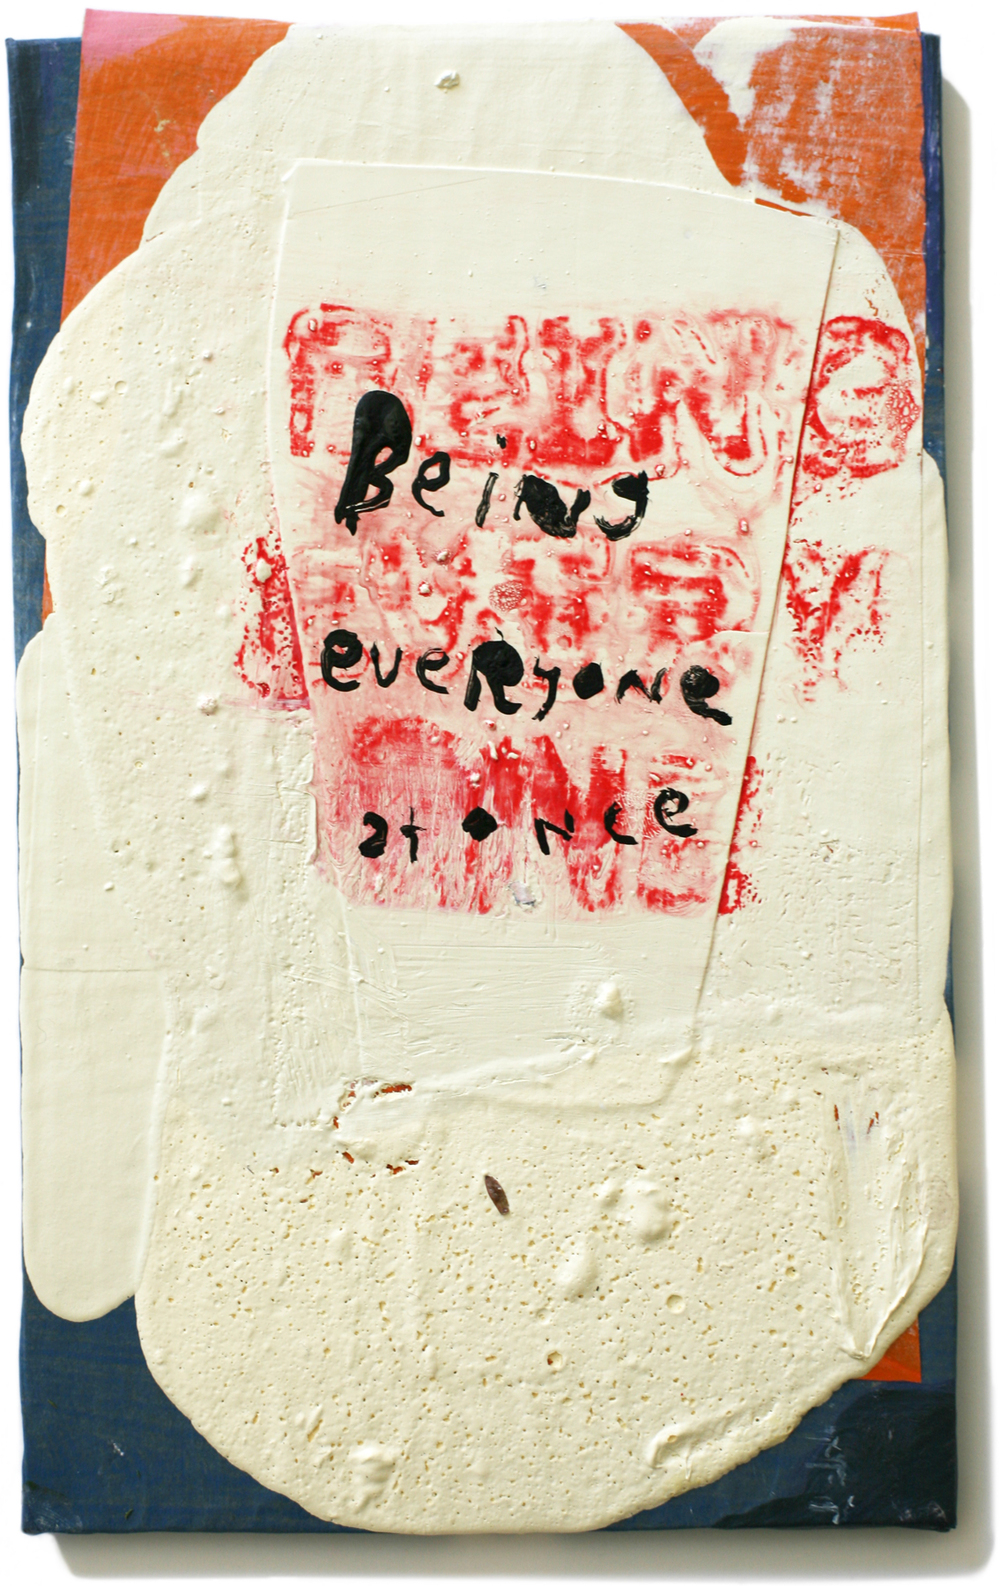 "Being Everyone, 10"" x 6"", 2011 (private collection)"